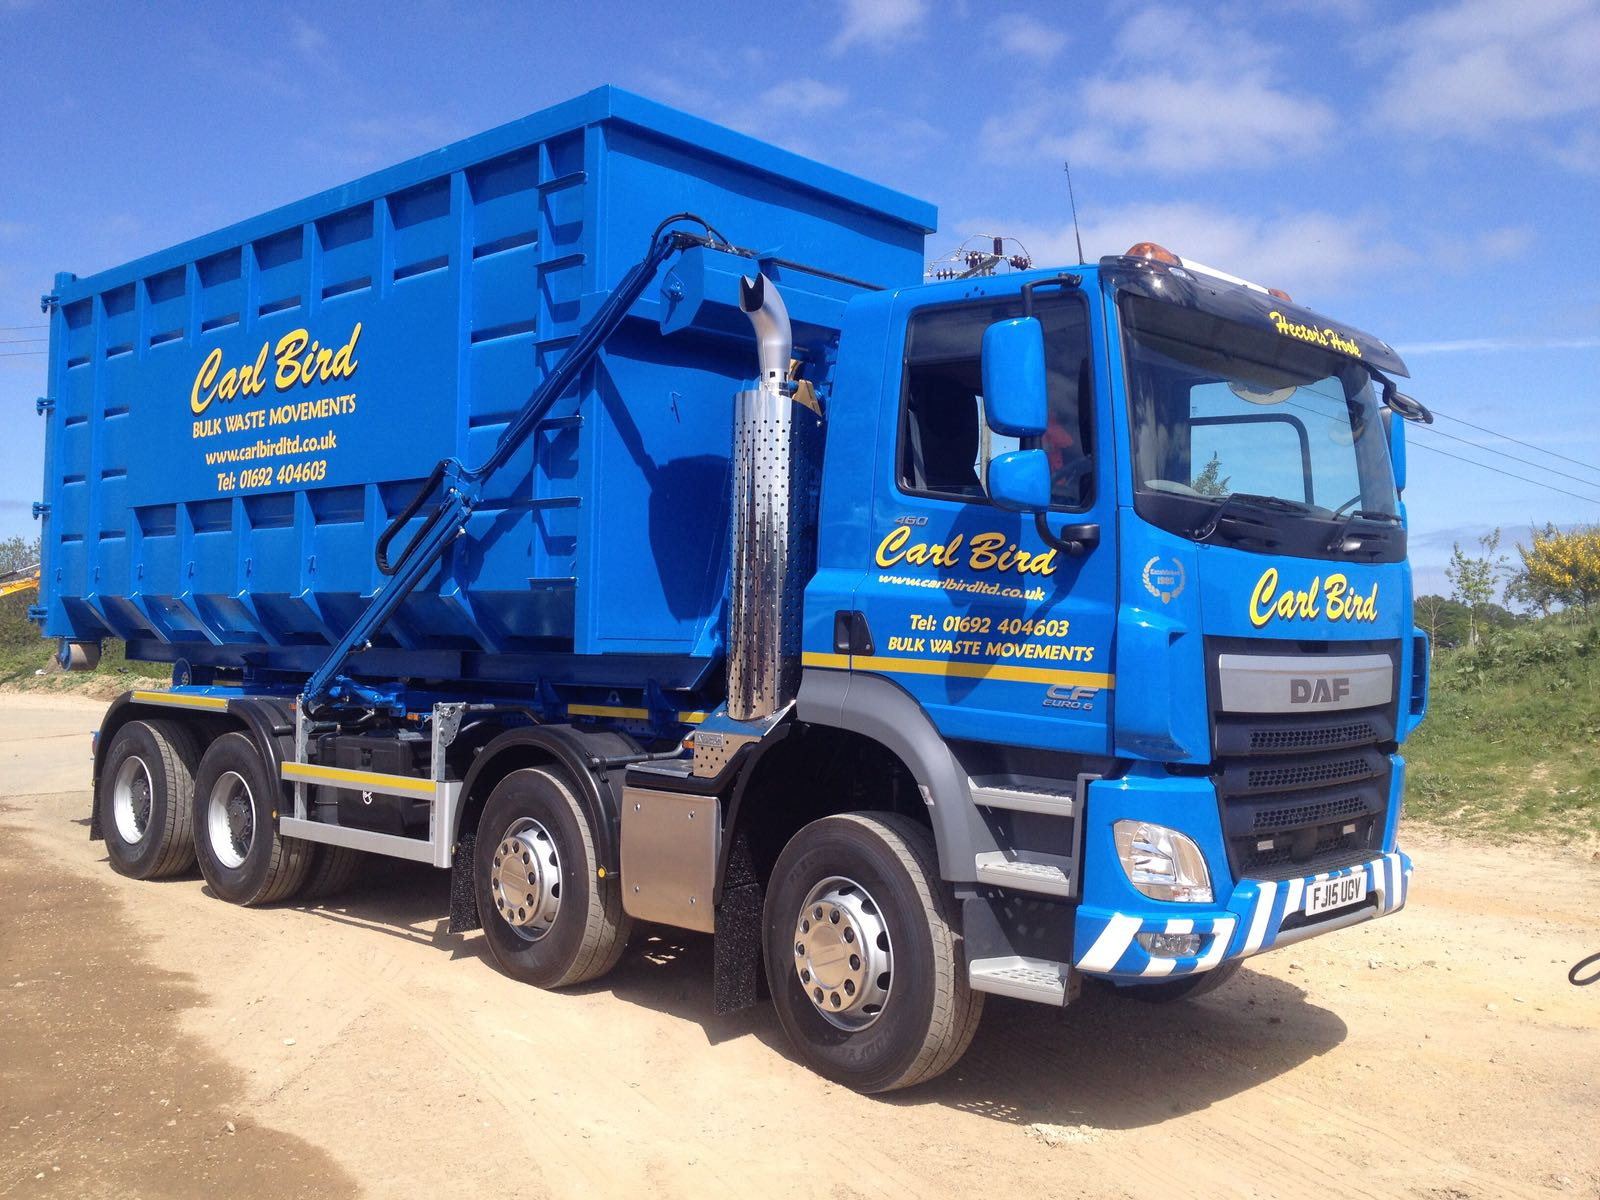 Carl Bird Skip Hire Lorry